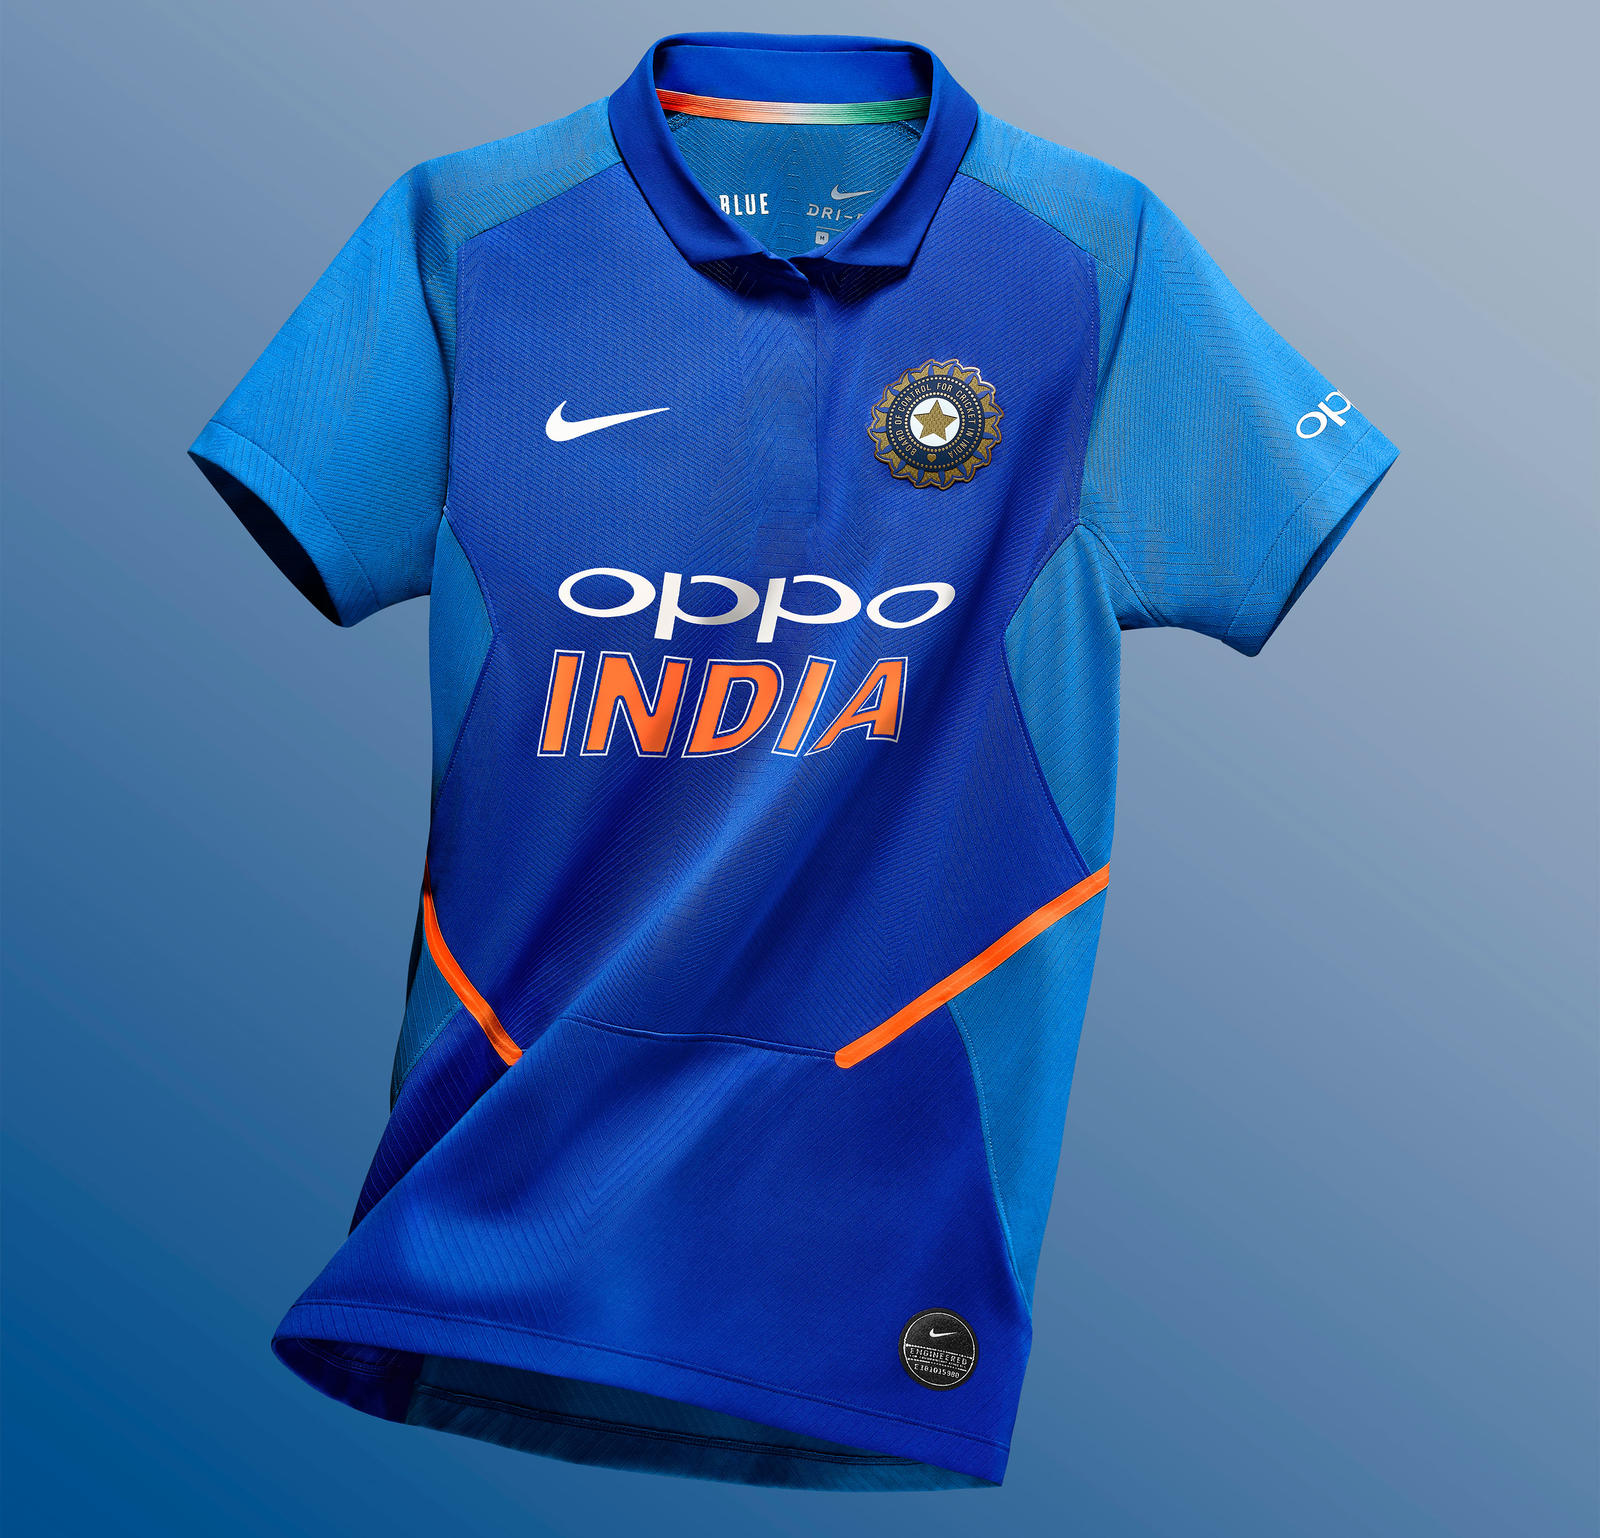 Nike Cricket India National Team Kits 2019 56751 387376 R05 Nike Apla Sp19 Cricket Womens Stadium Top Floating 1217 Hr